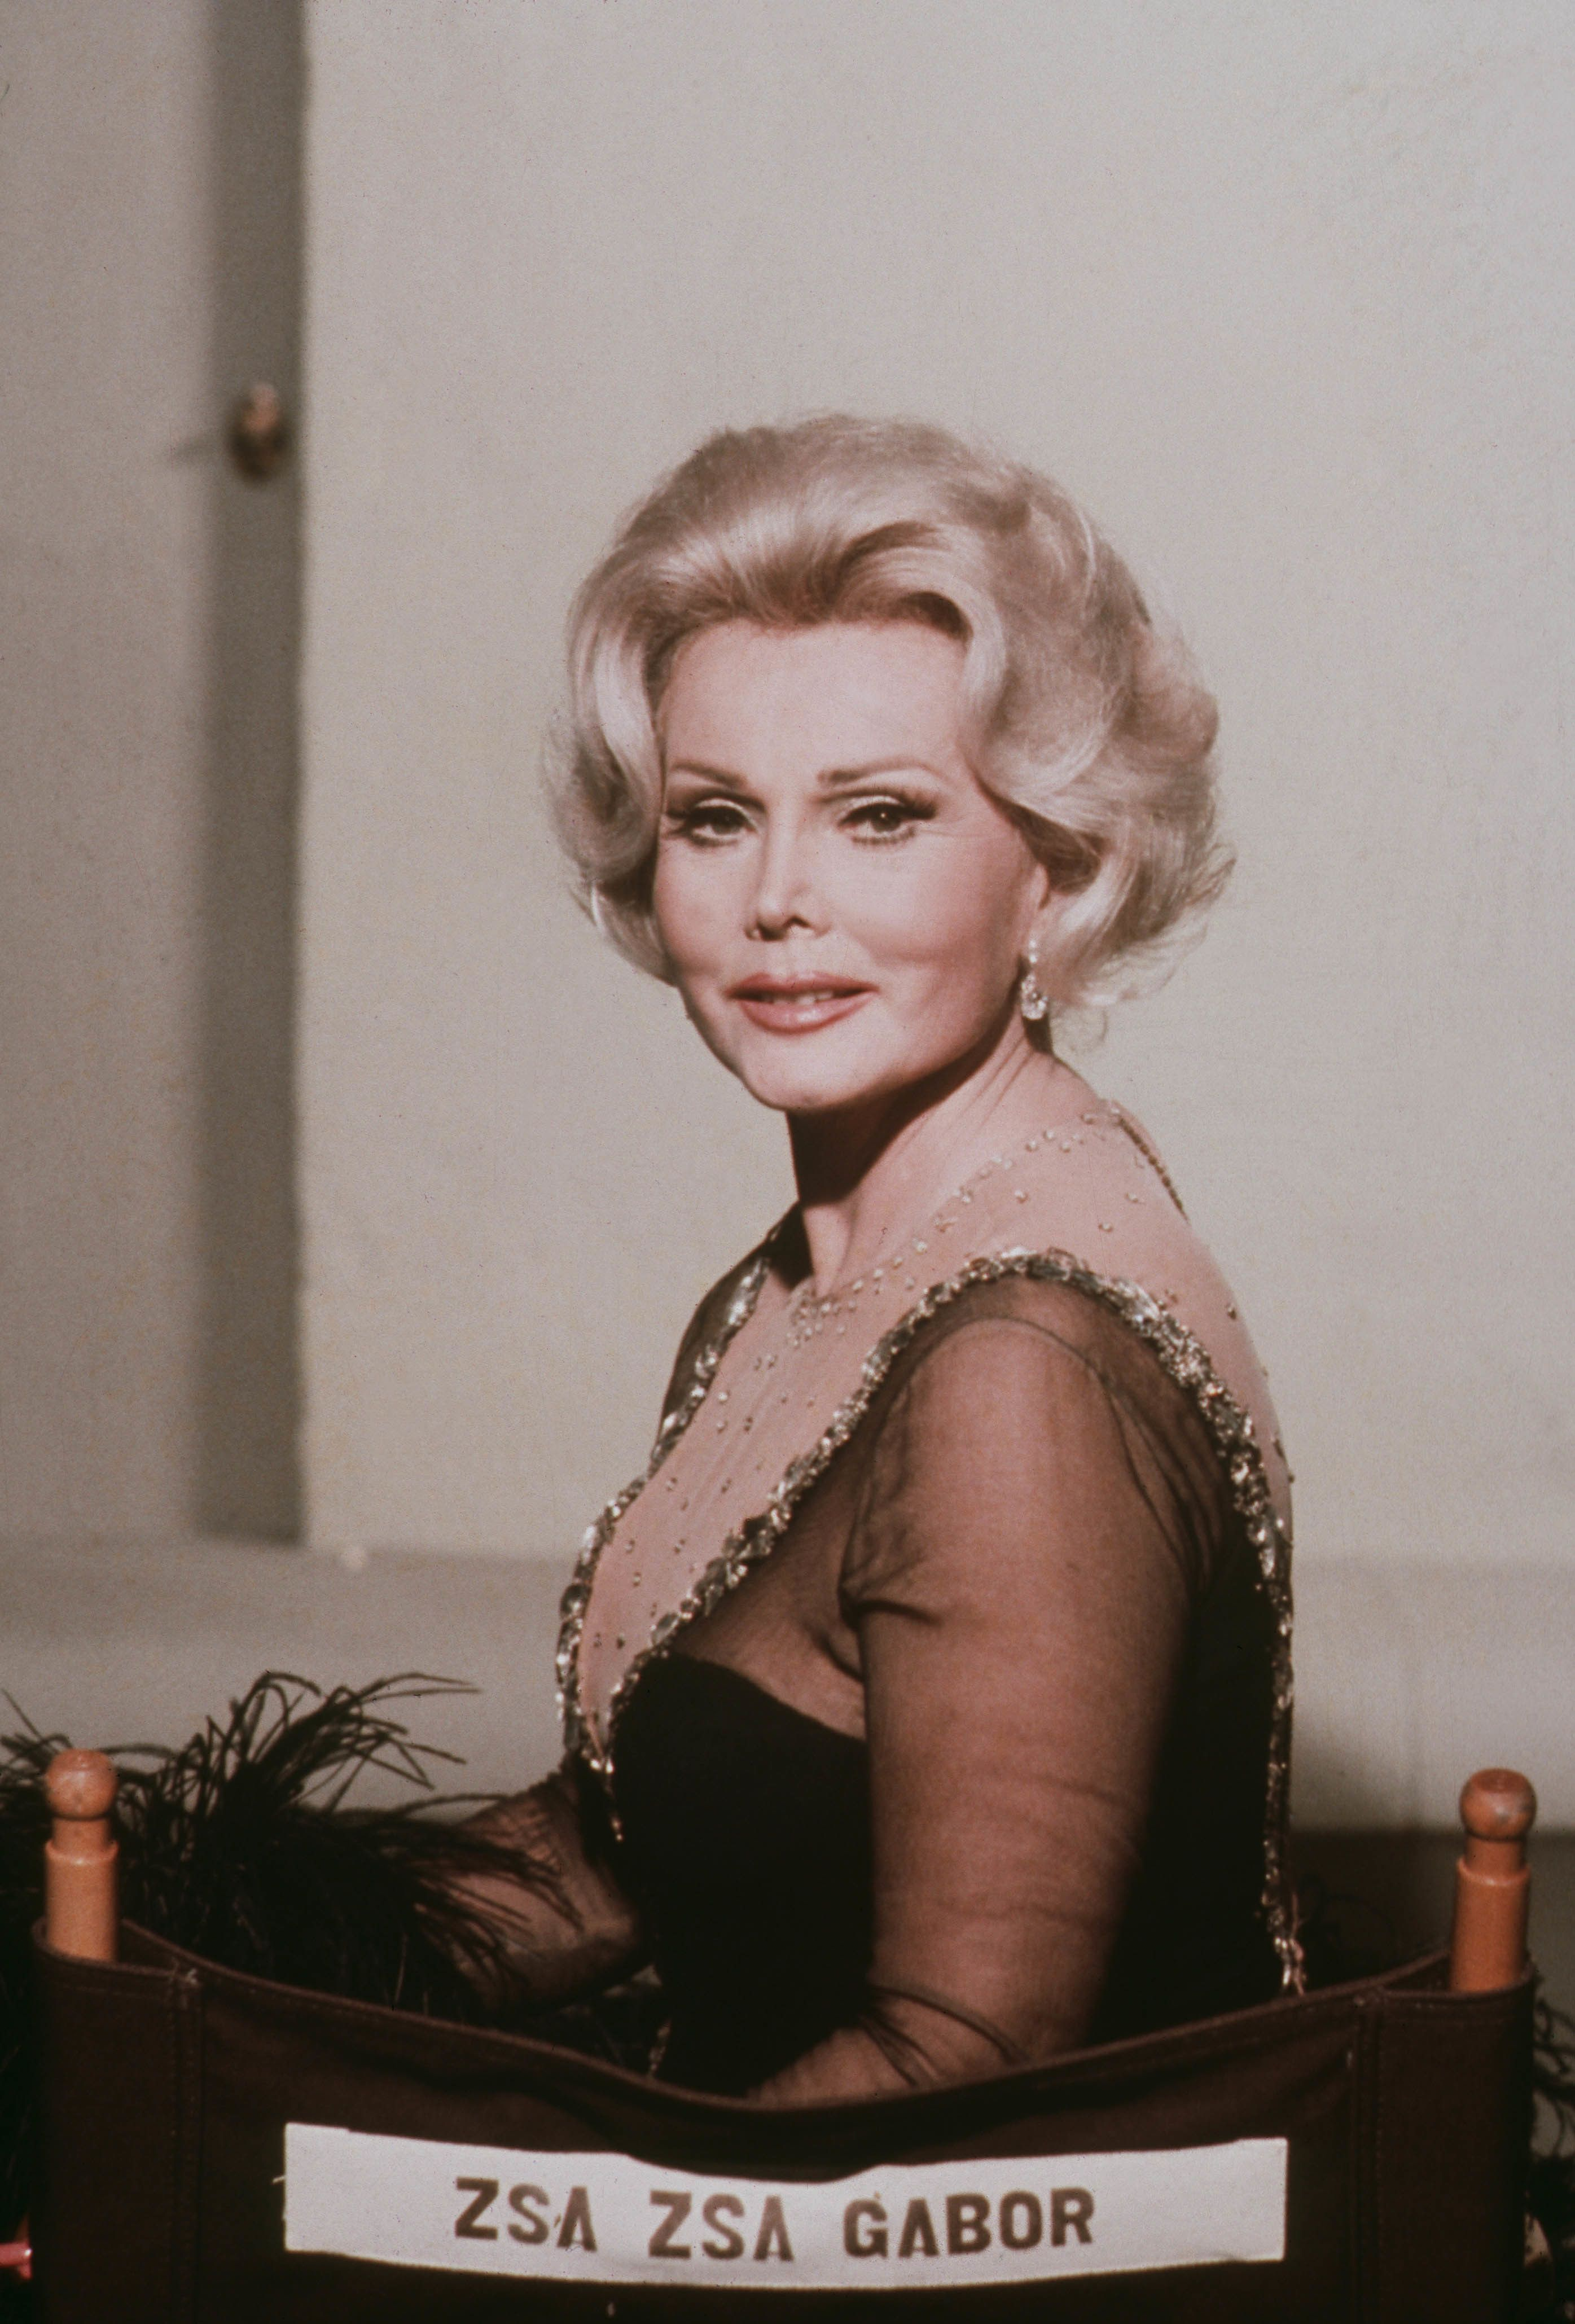 Zsa Zsa Gabor Quotes 35 Epic Zsa Zsa Gabor Quotes  Hollywood Legends & Icons